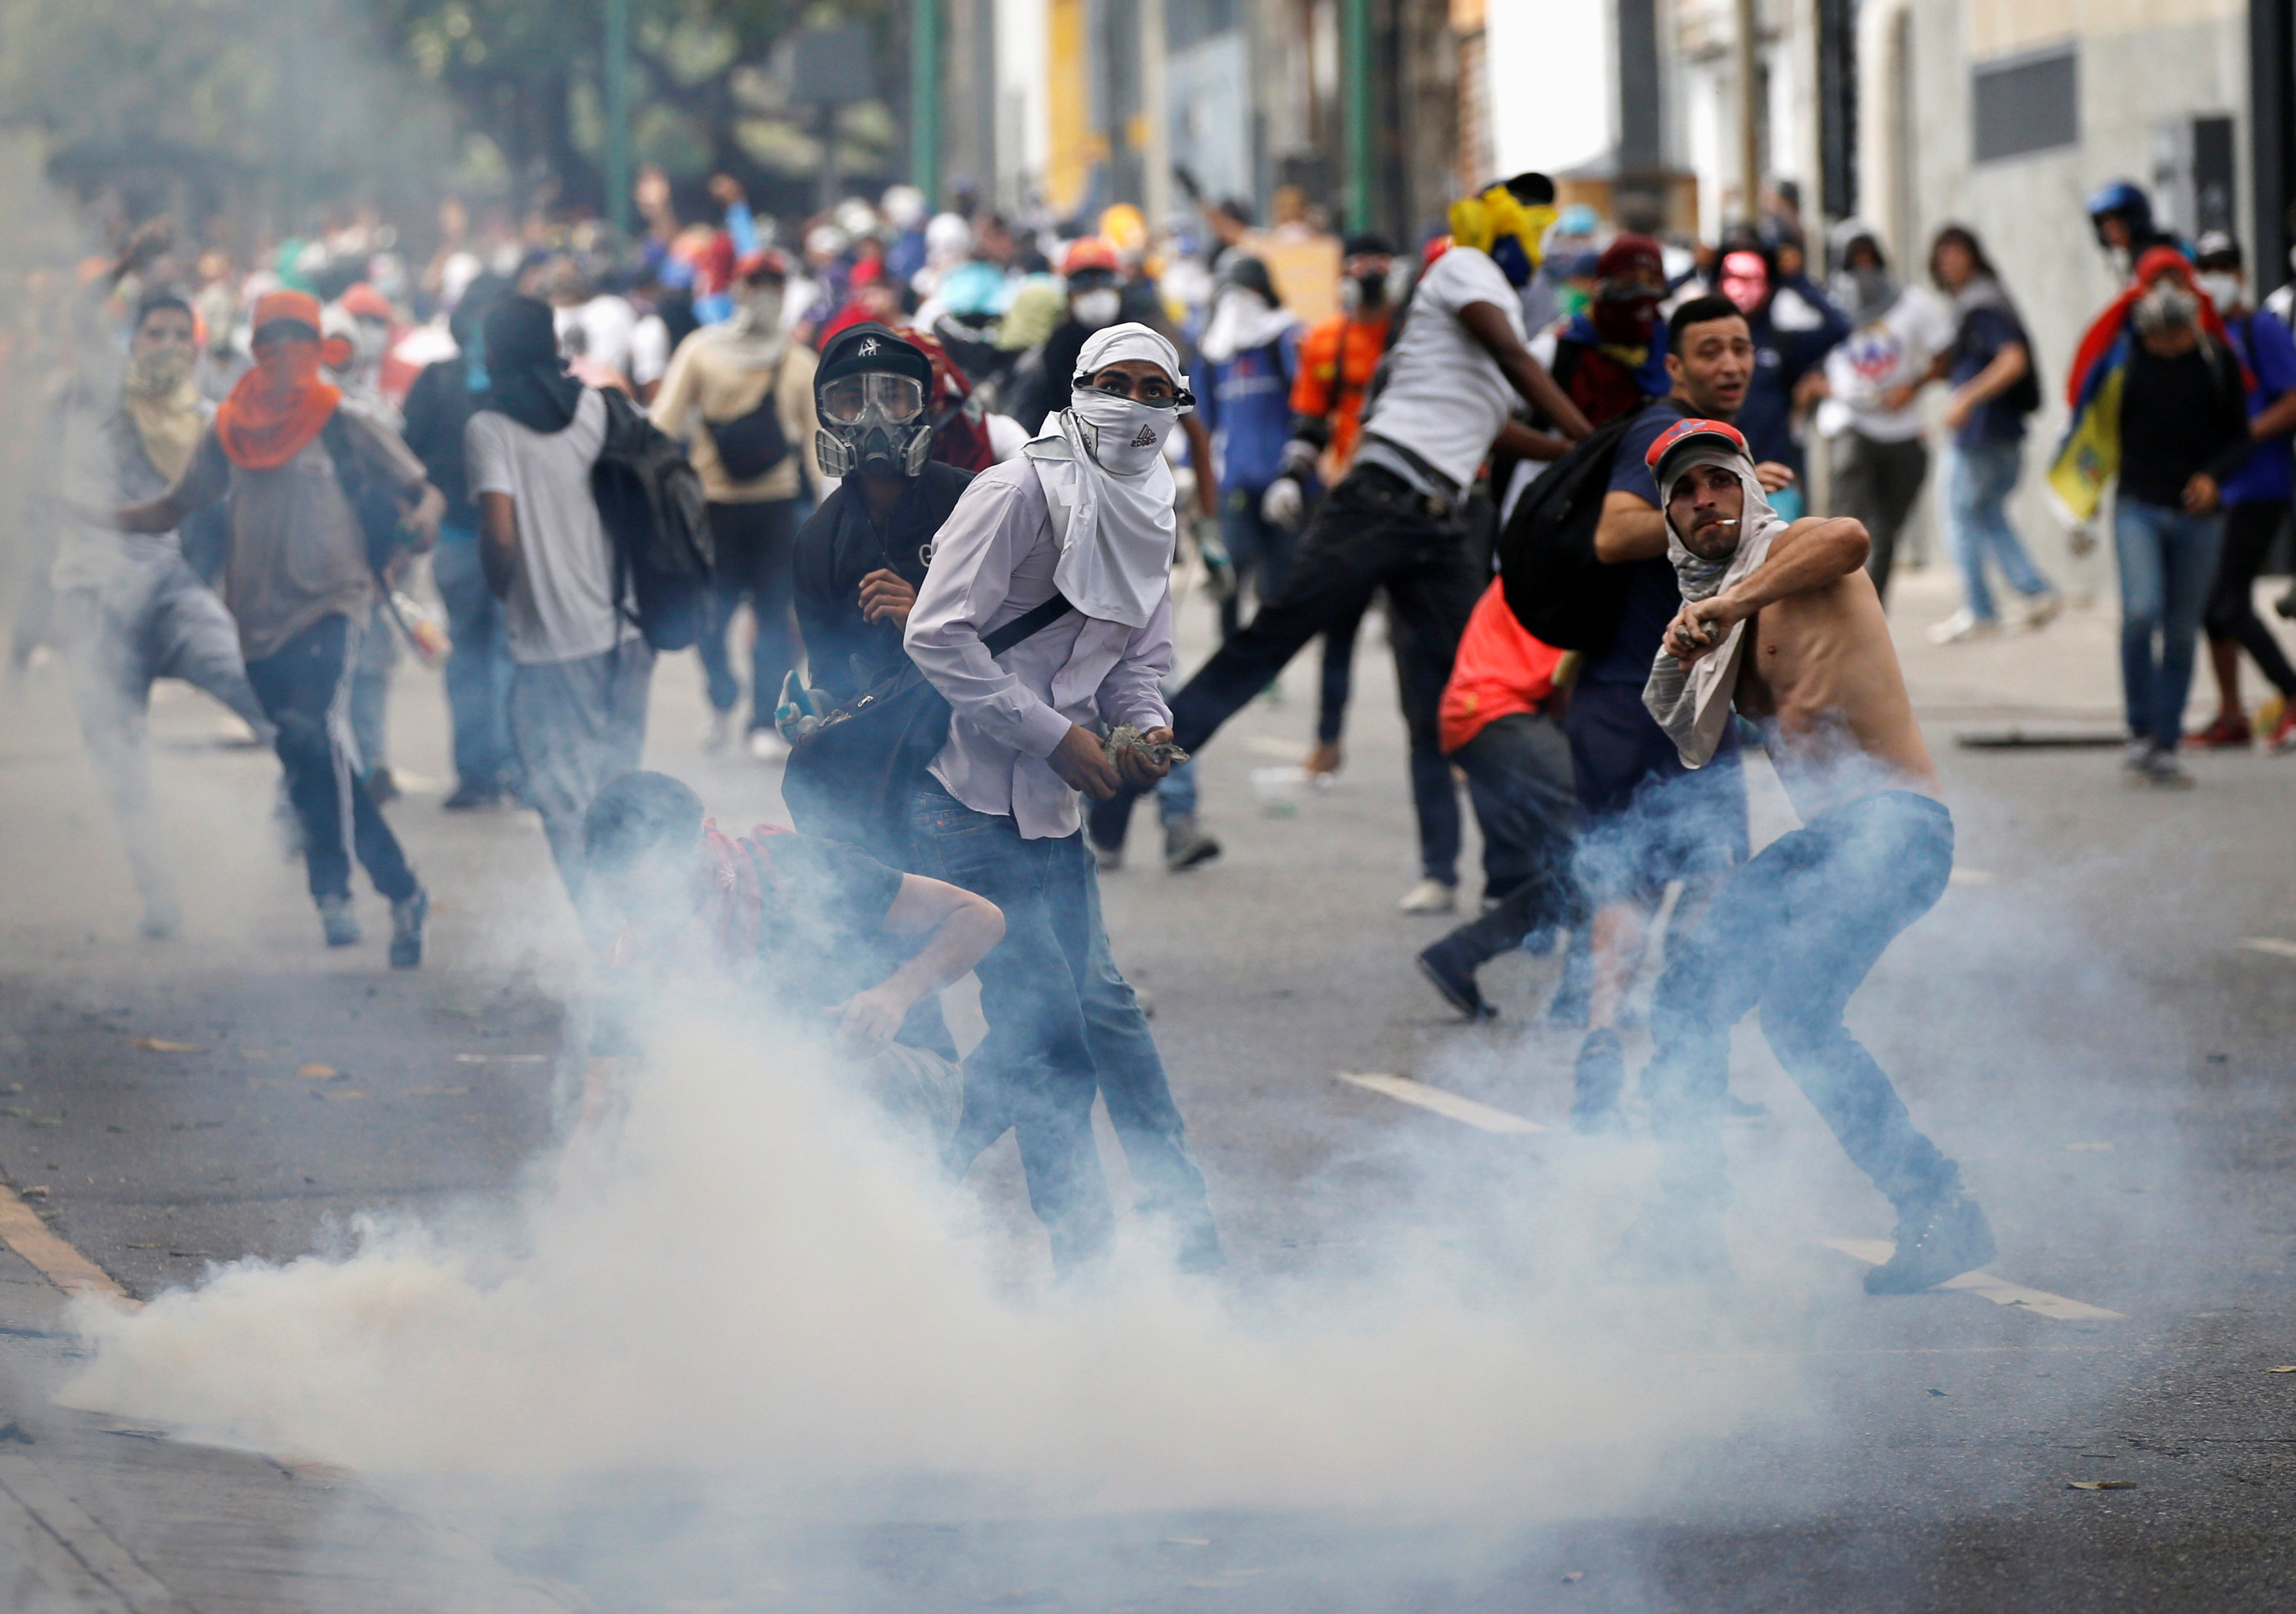 USA says it will take two years for Venezuela to leave OAS